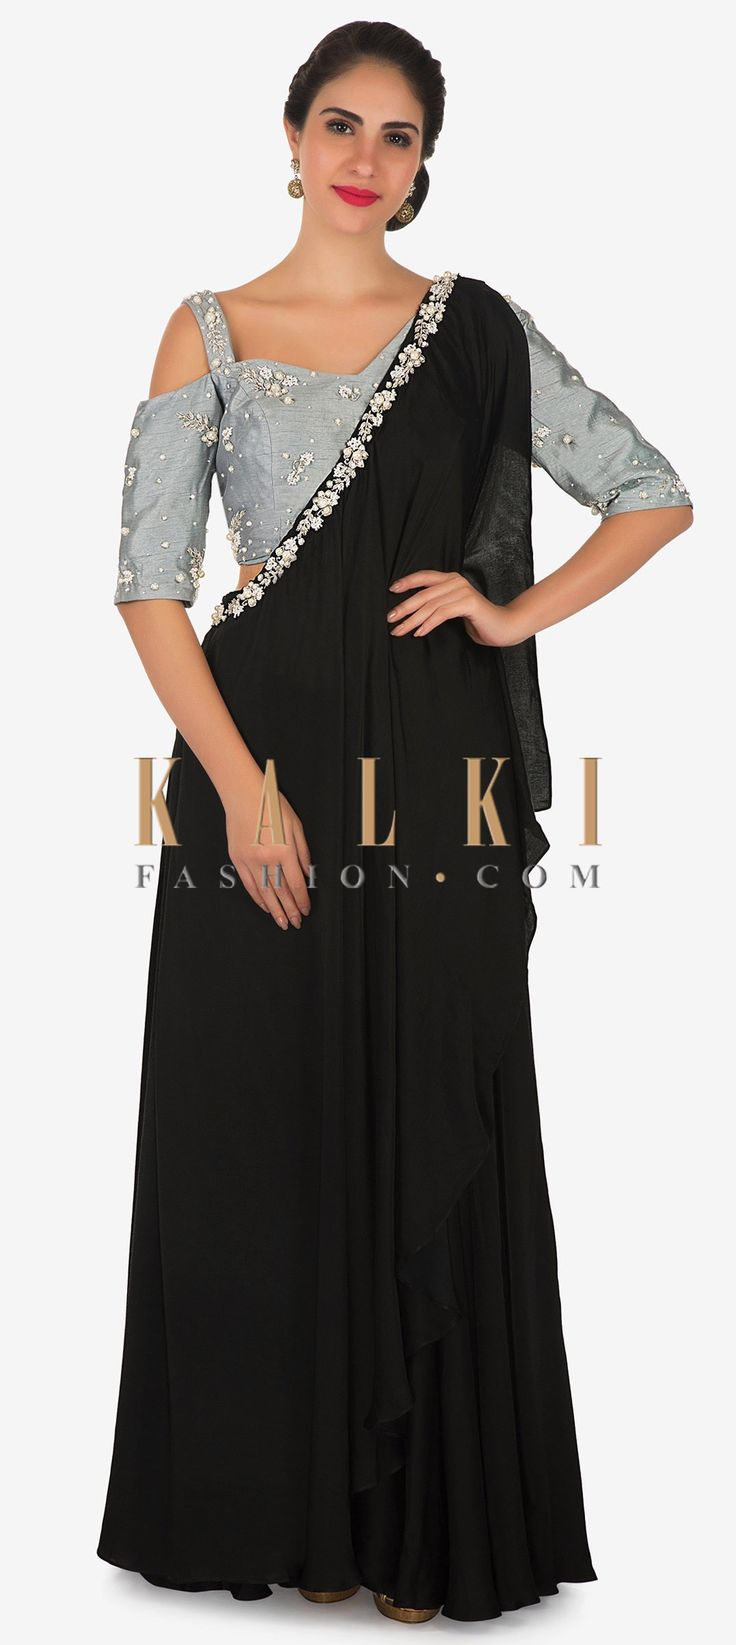 Buy Online from the link below. We ship worldwide Click Anywhere to Tag Debina Bonnerjee in Kalki black skirt with grey blouse matched with fancy dupatta only on Kalki  Black skirt featuring in satin. Matched with grey raw silk blouse embellished in moti and zardosi embroidery. It comes with fancy drape dupatta in black with embroidered border. Celebrity-Debina Bonnerjee, Actress. Slight variation in color is possible.